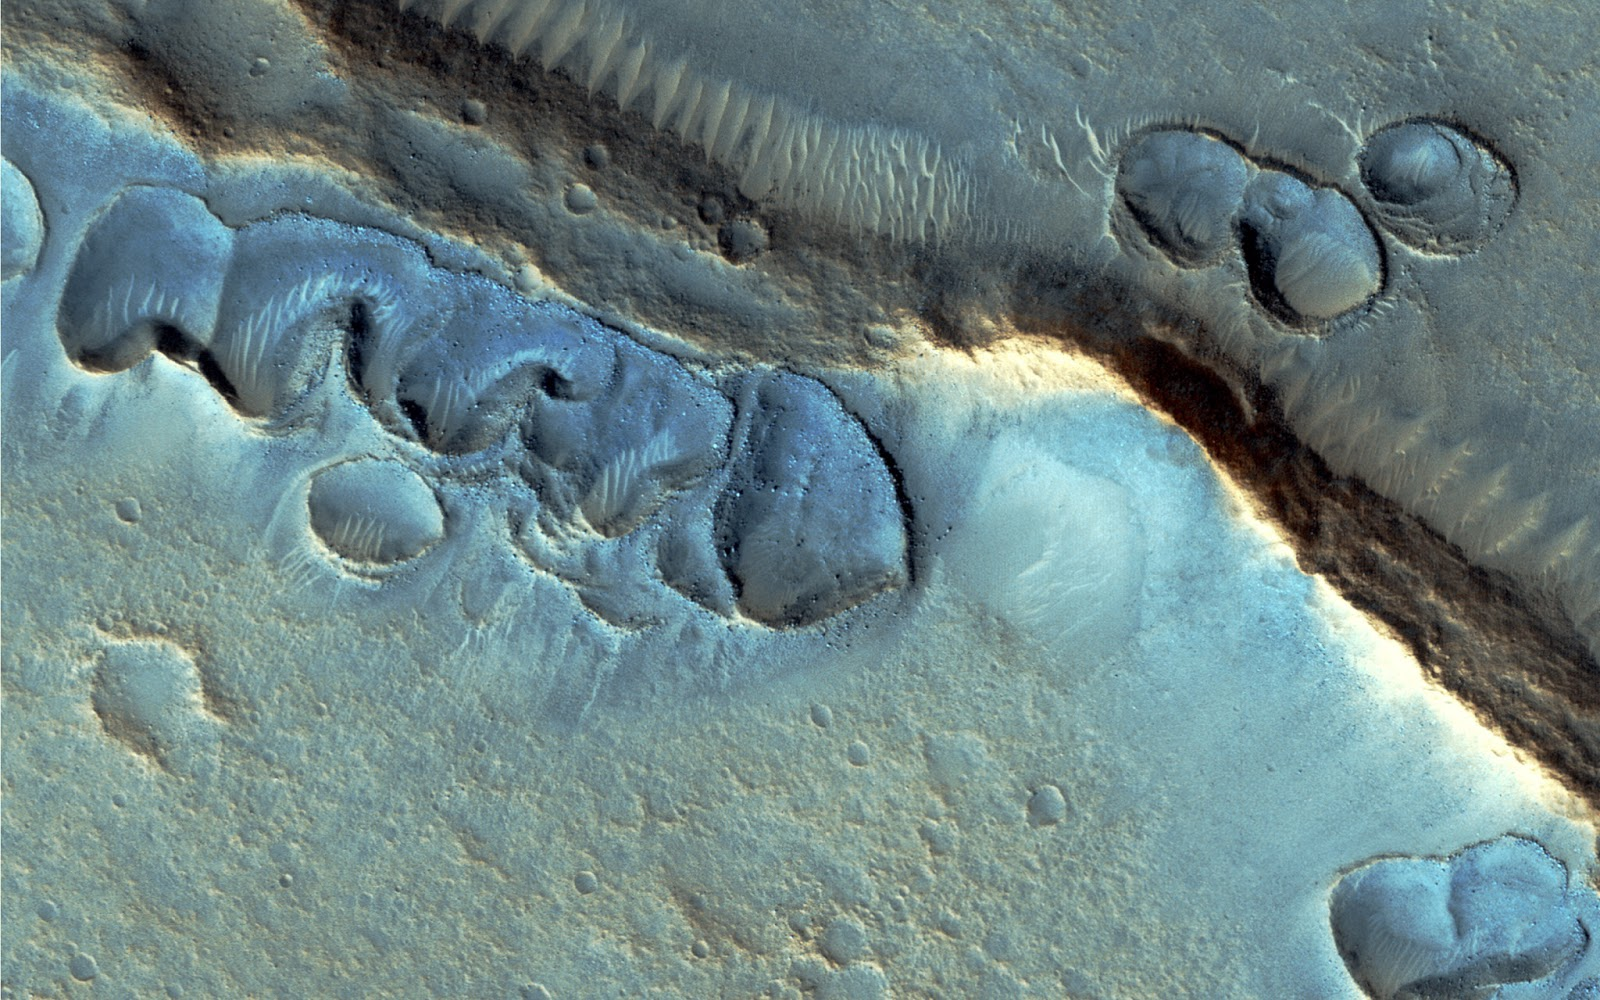 Unusual Topography in Acidalia Planitia by HiRise